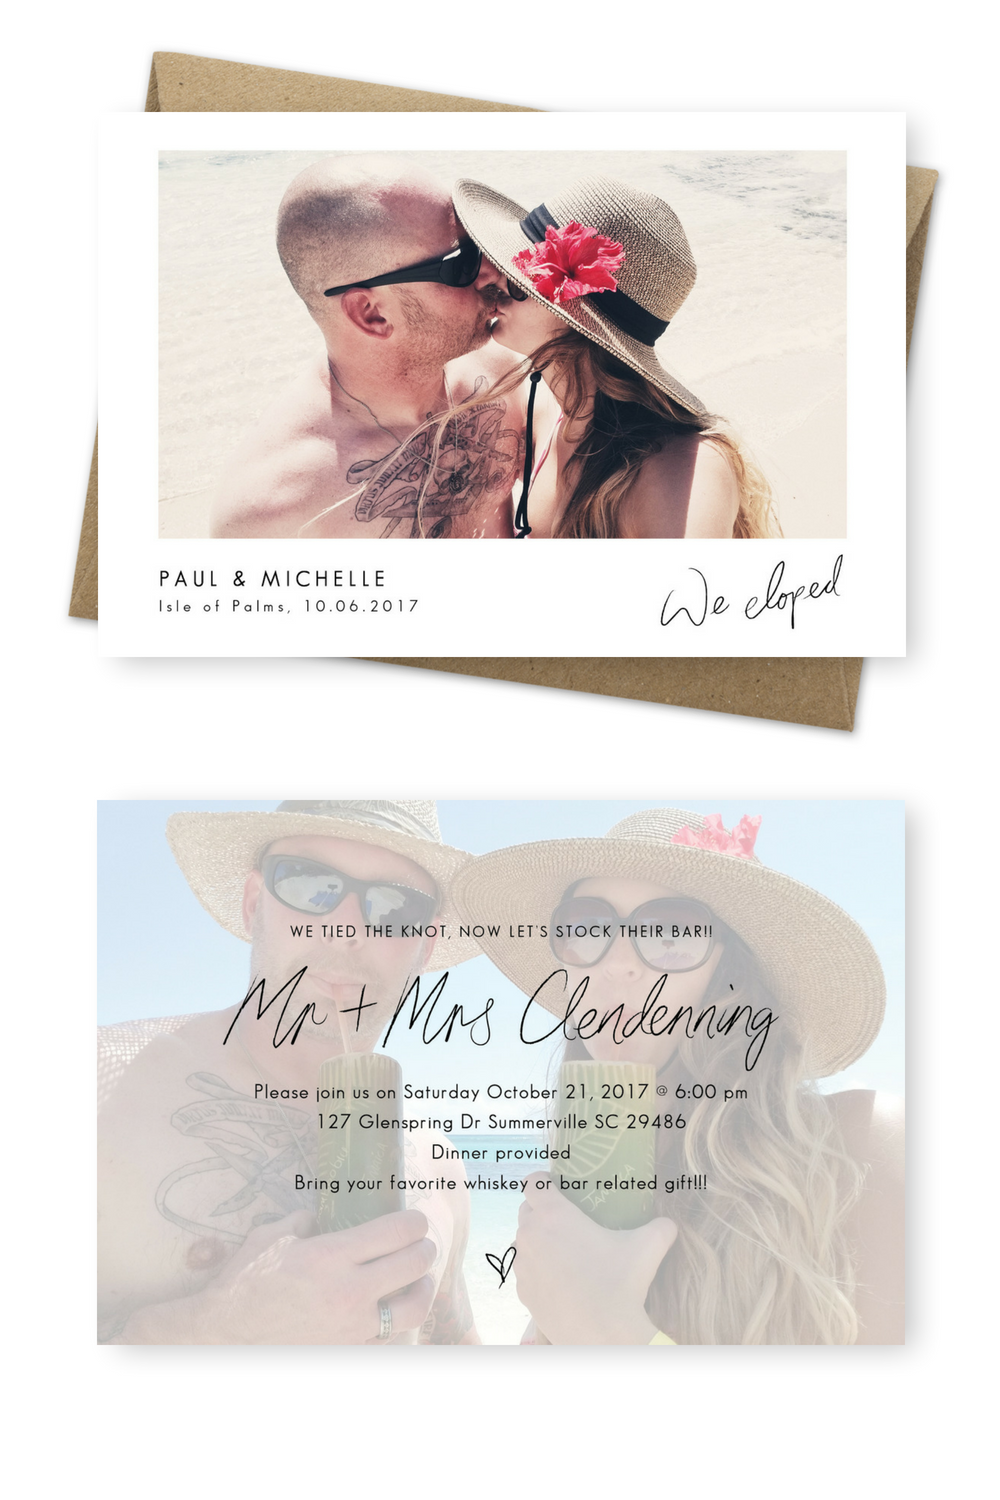 Wedding decorations on the beach october 2018  Gorgeous Wedding Announcement Cards and Elopement Invitation Ideas